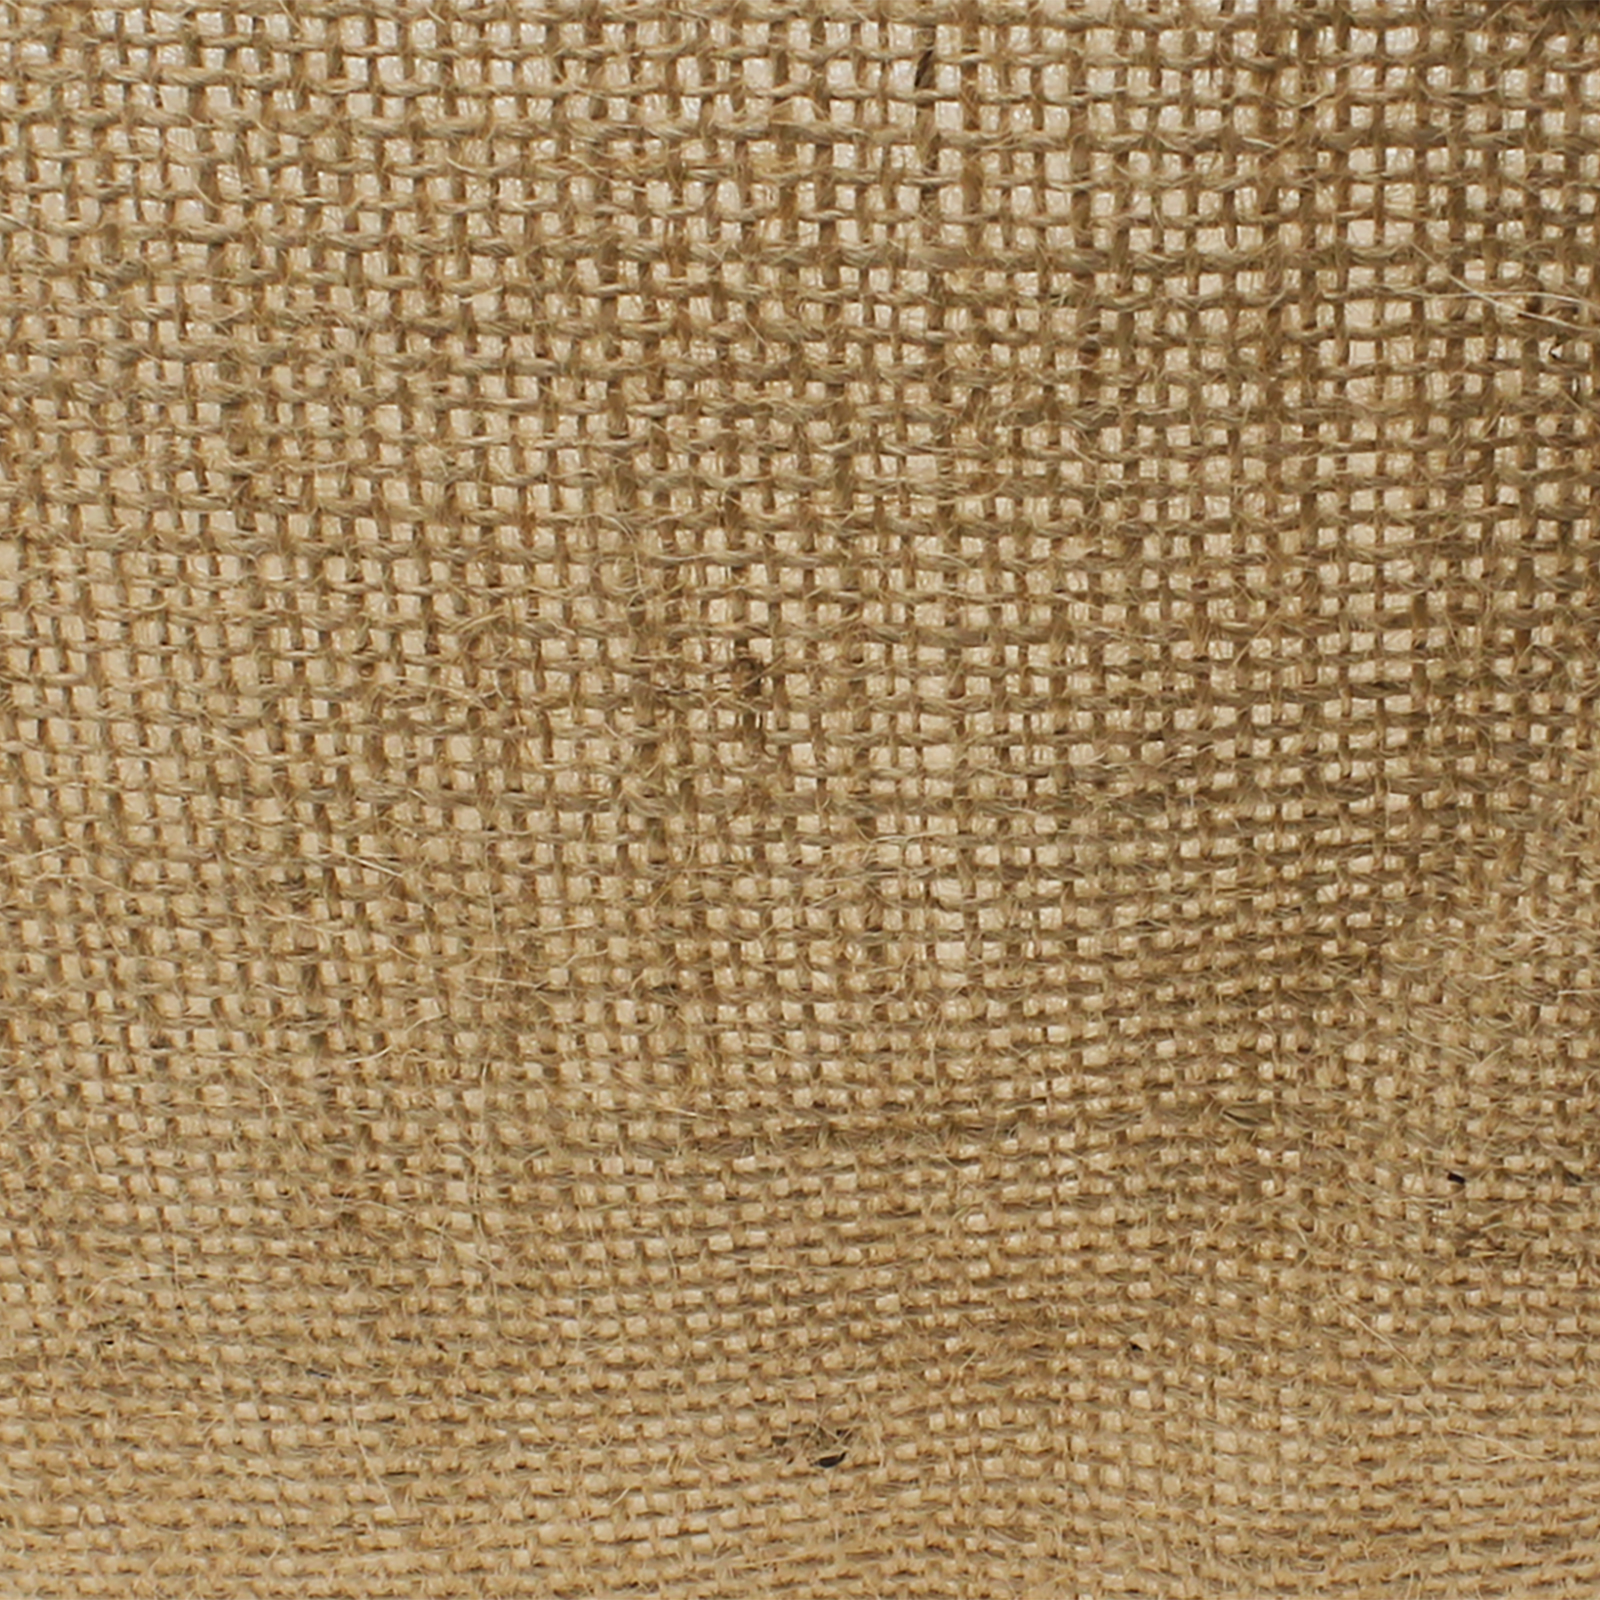 18824 18825 Burlap close up